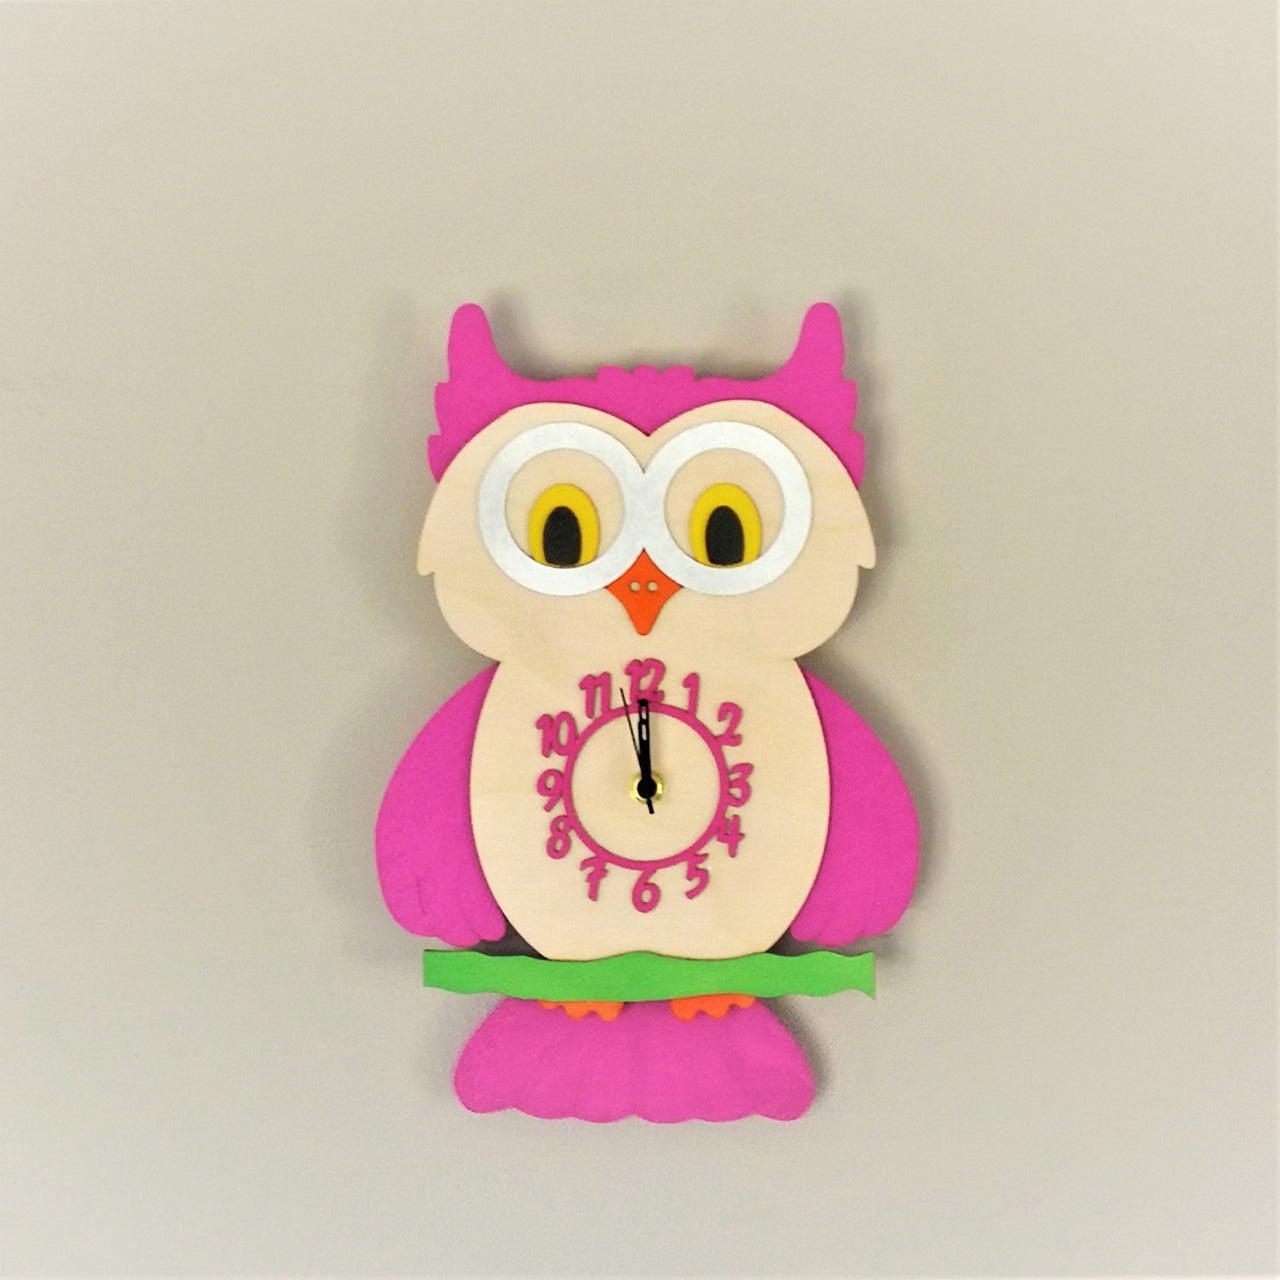 This pretty pink pendulum clock comes alive with a cute owl with moving tail feathers perched on a branch.